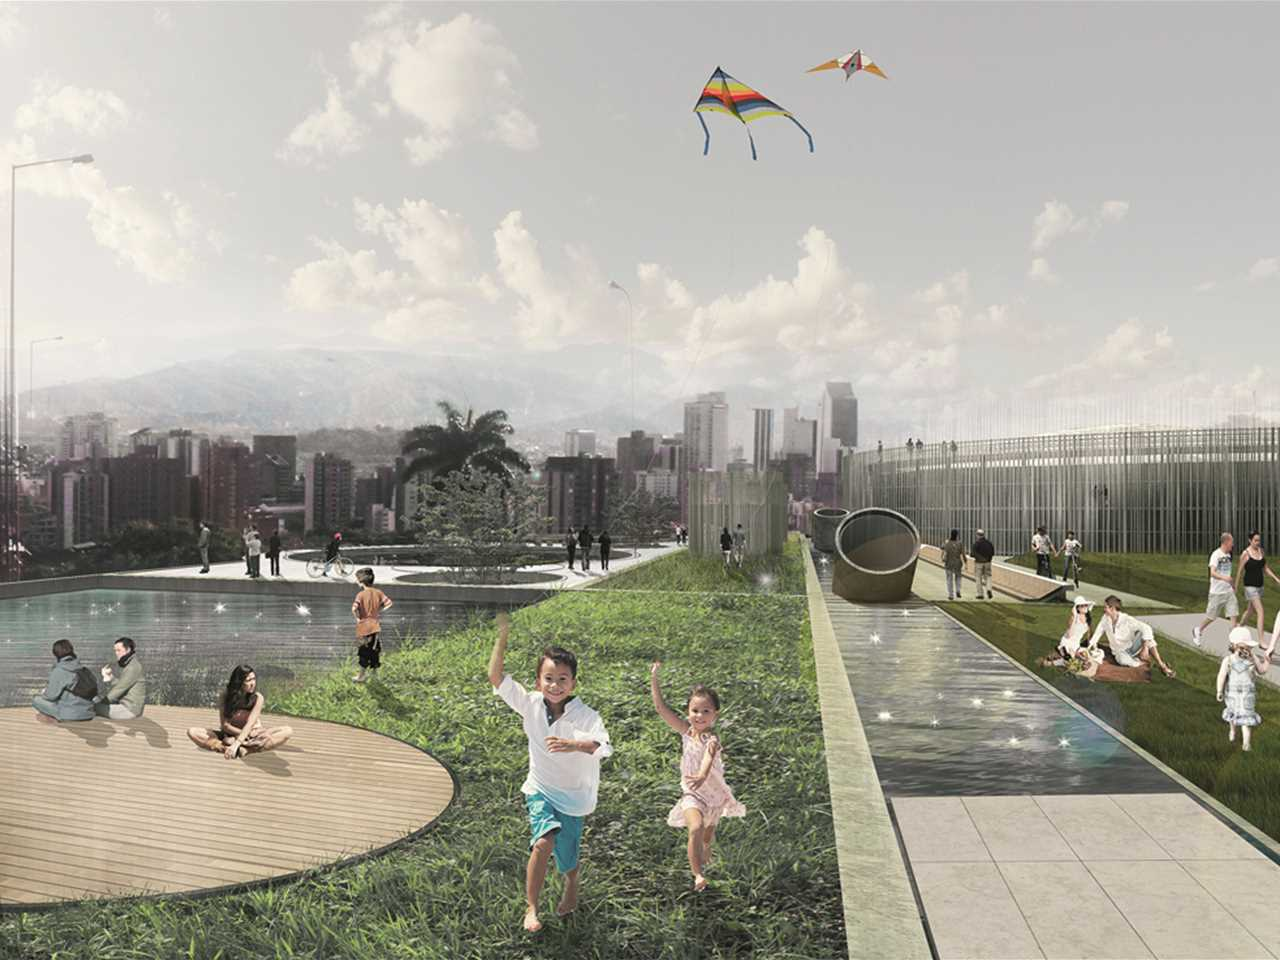 Gold – Articulated Site: Water reservoirs as public park, Medellín, Colombia – This project for a …